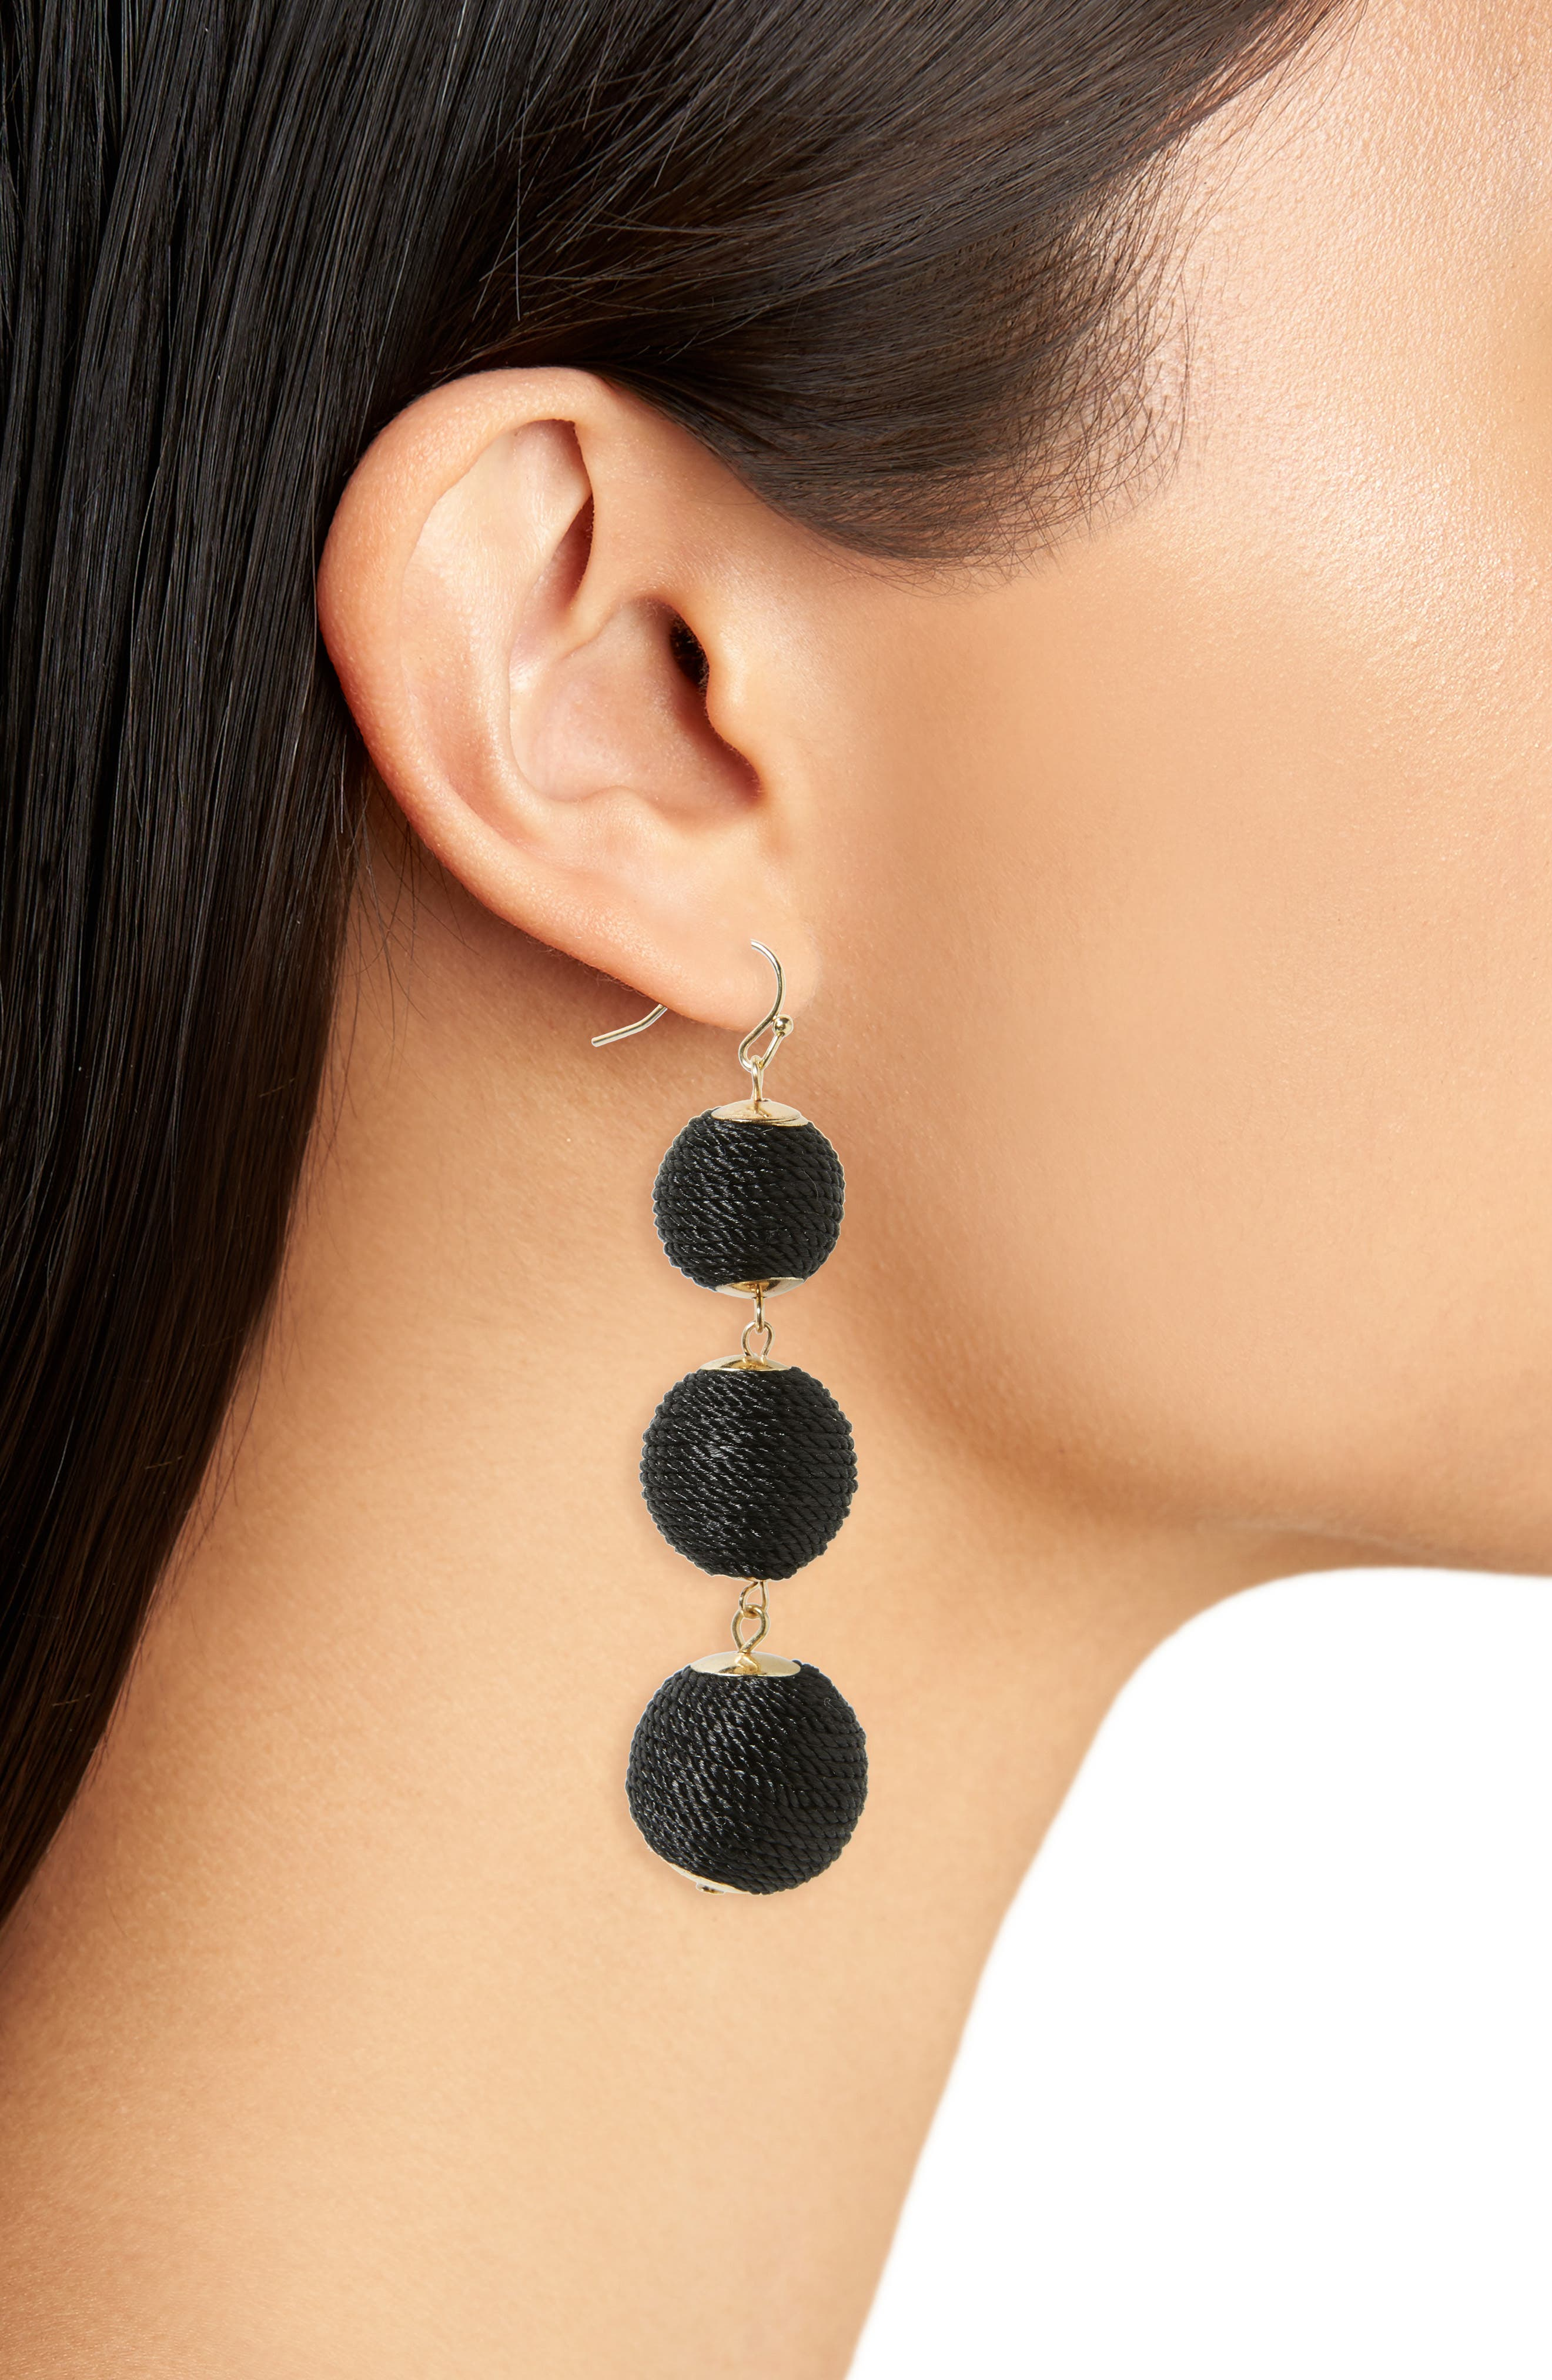 Ball Drop Earrings,                             Alternate thumbnail 2, color,                             Black